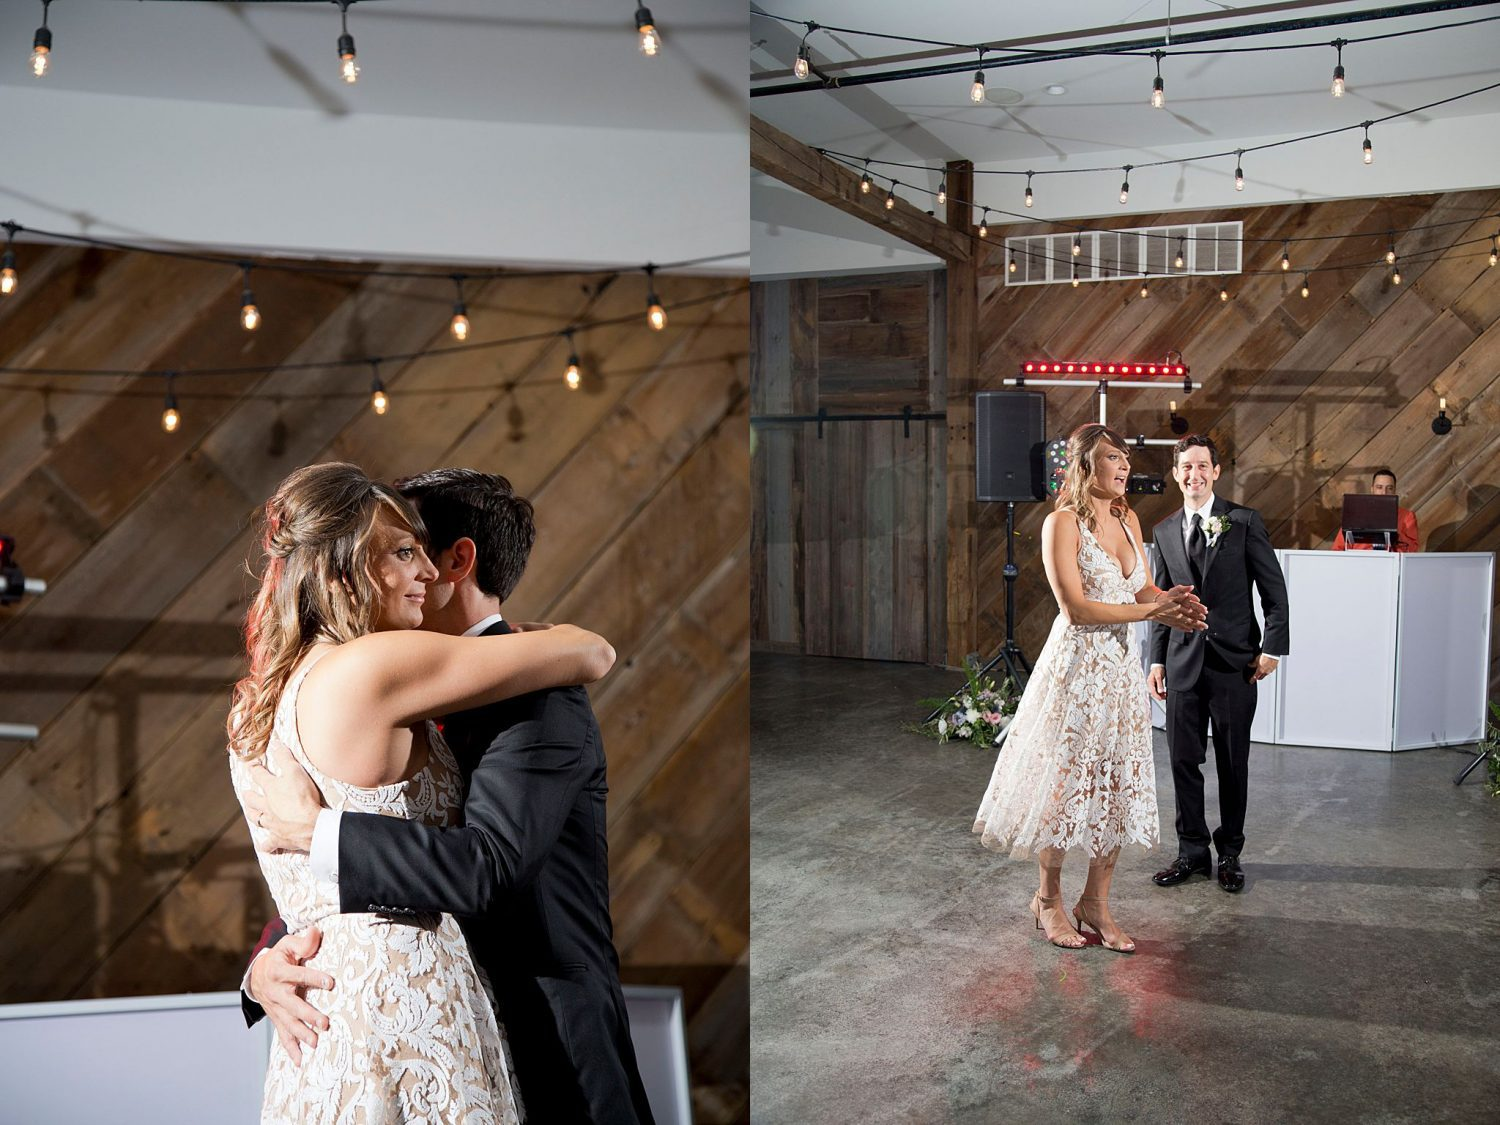 Bride and groom dancing with their guests at their wedding reception at Rapid Creek Cidery.